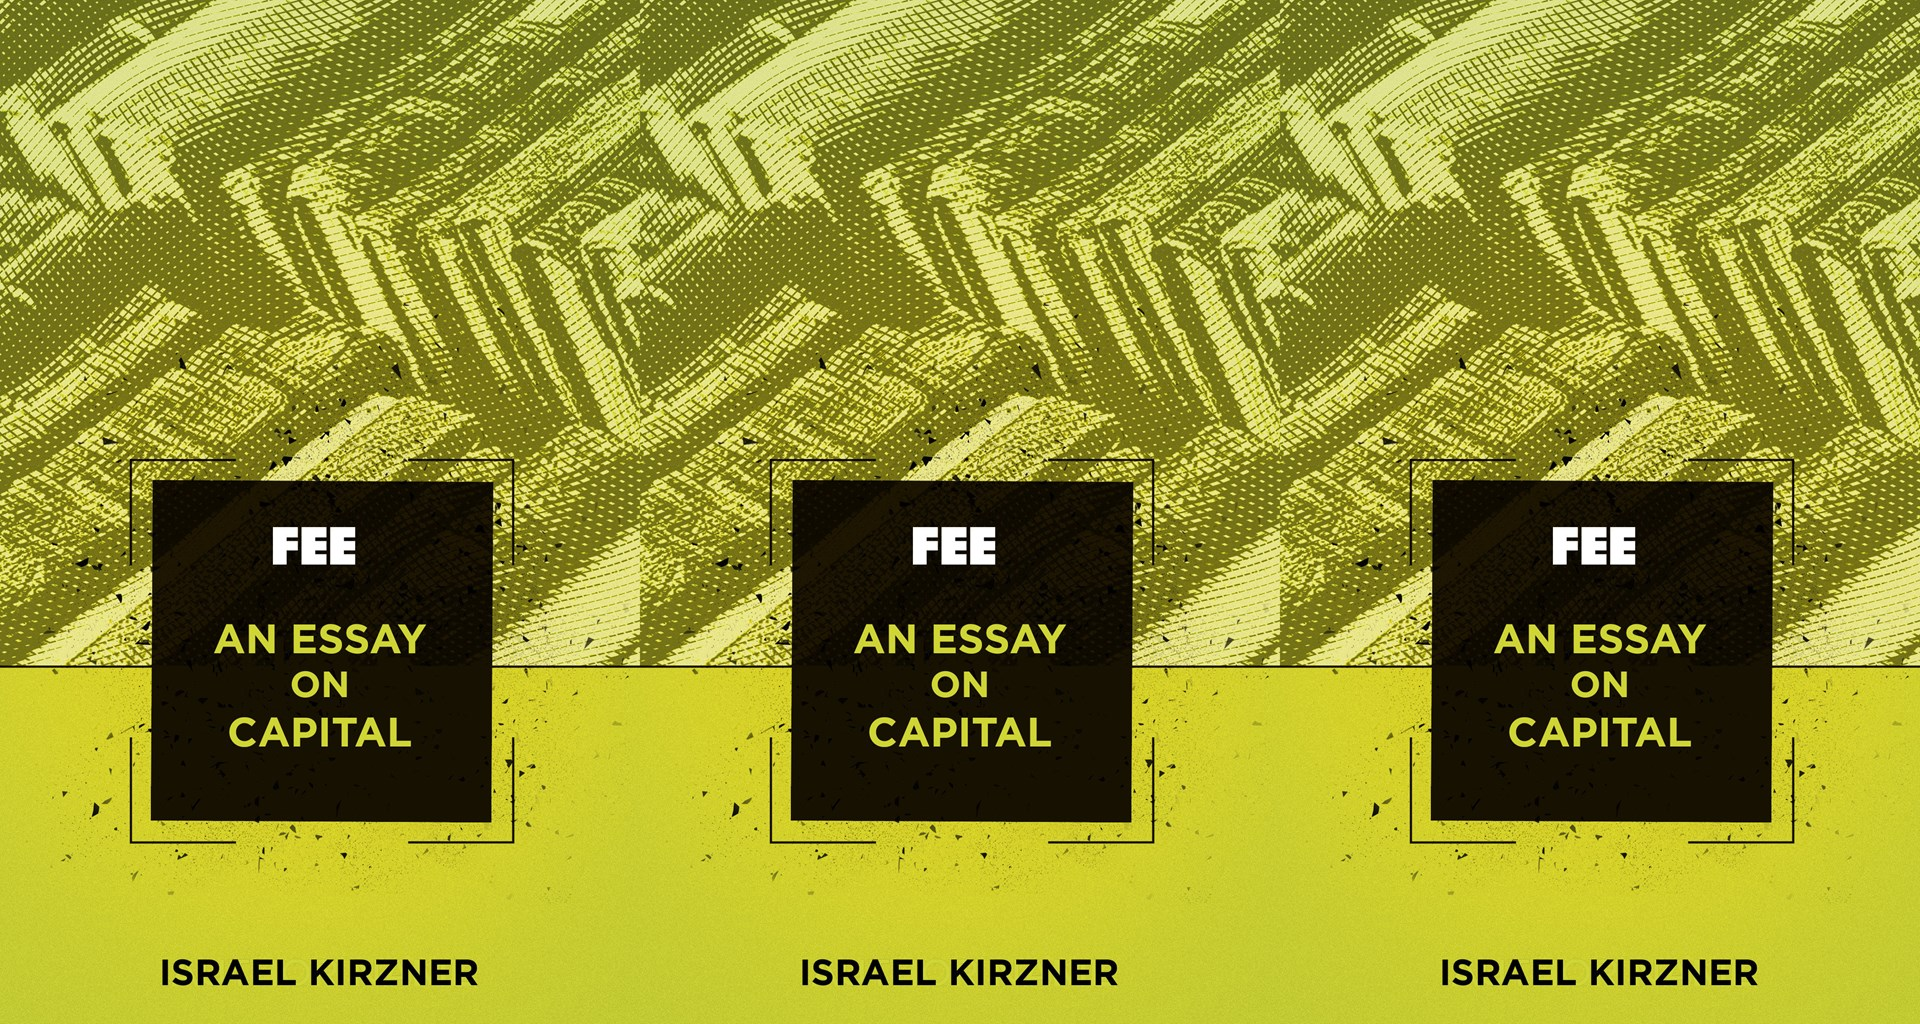 007 Kirzner Israelm Anessayoncapital Ebookanchorcentermodecropwidth1920rnd131503143810000000 Essay Capital Breathtaking Promo Codes Capitalism In The Usa 1900 To 1940 New Deal Reviews Full